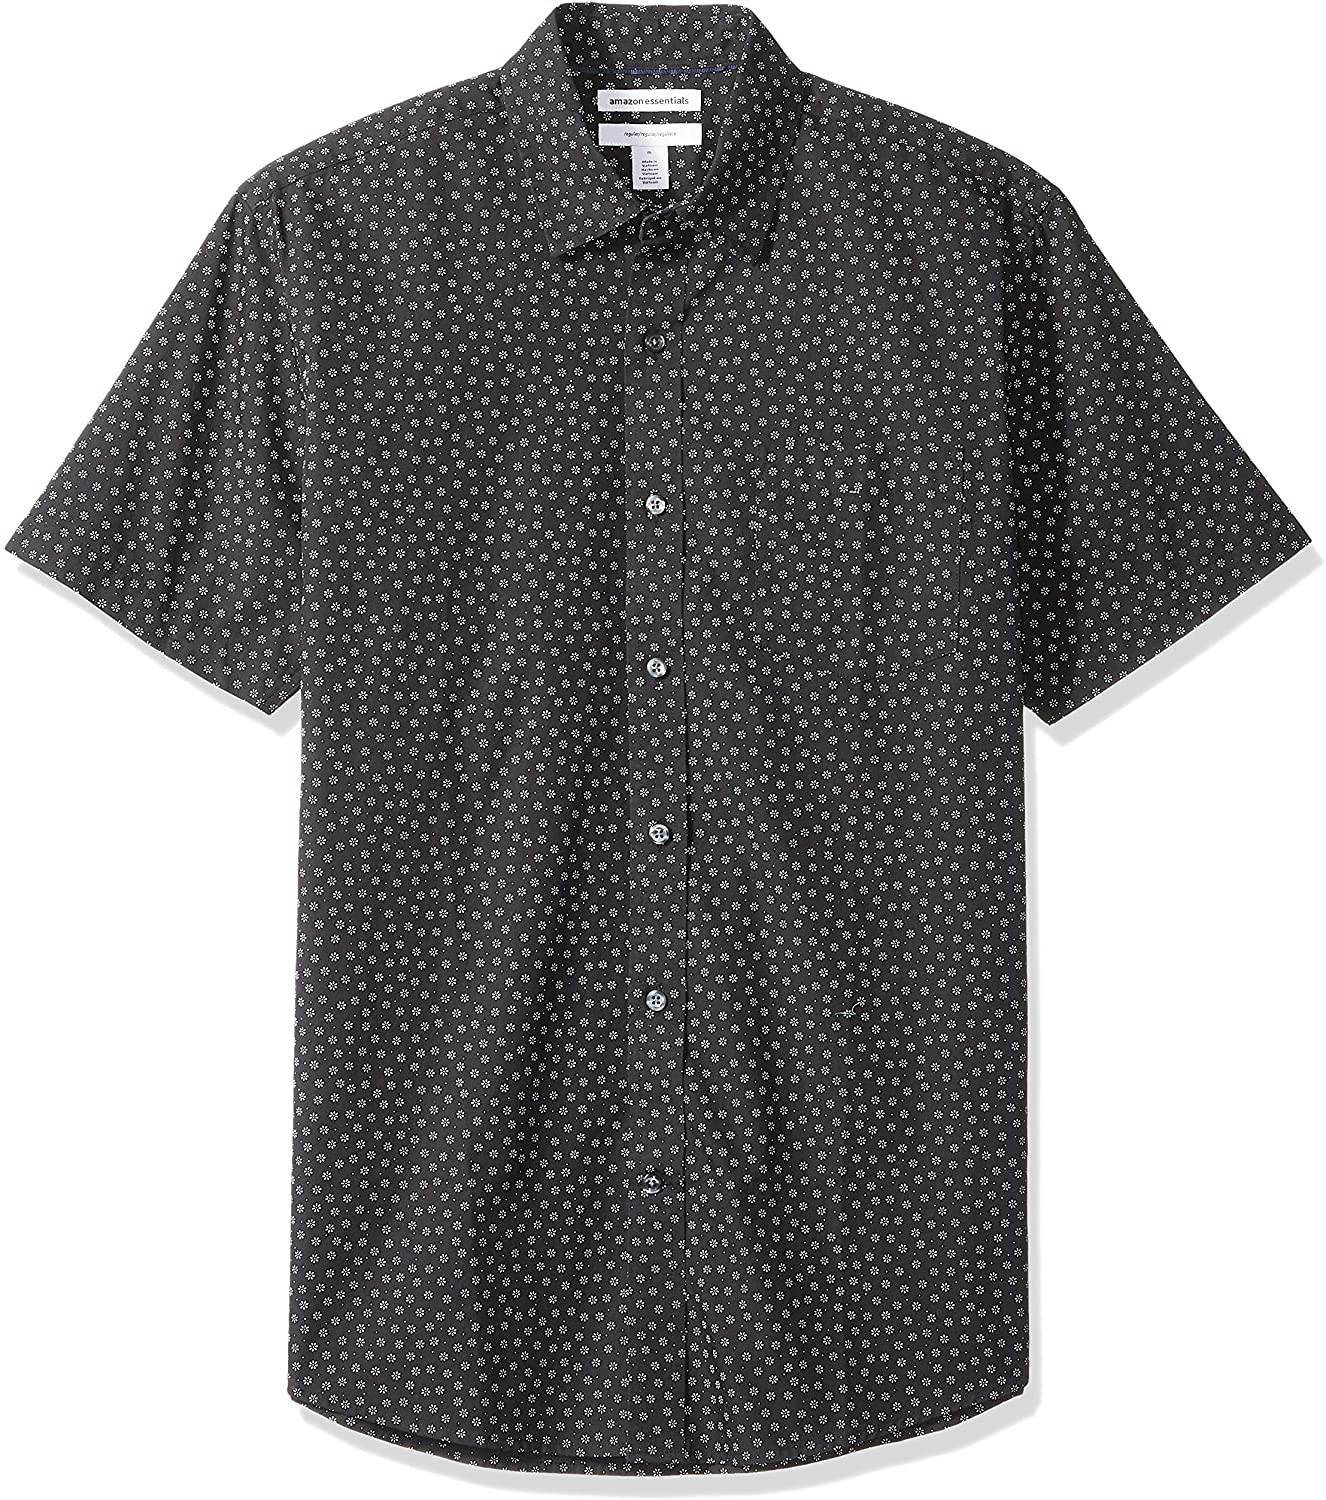 Essentials Men's Regular-fit Short-Sleeve Print Shirt: Clothing